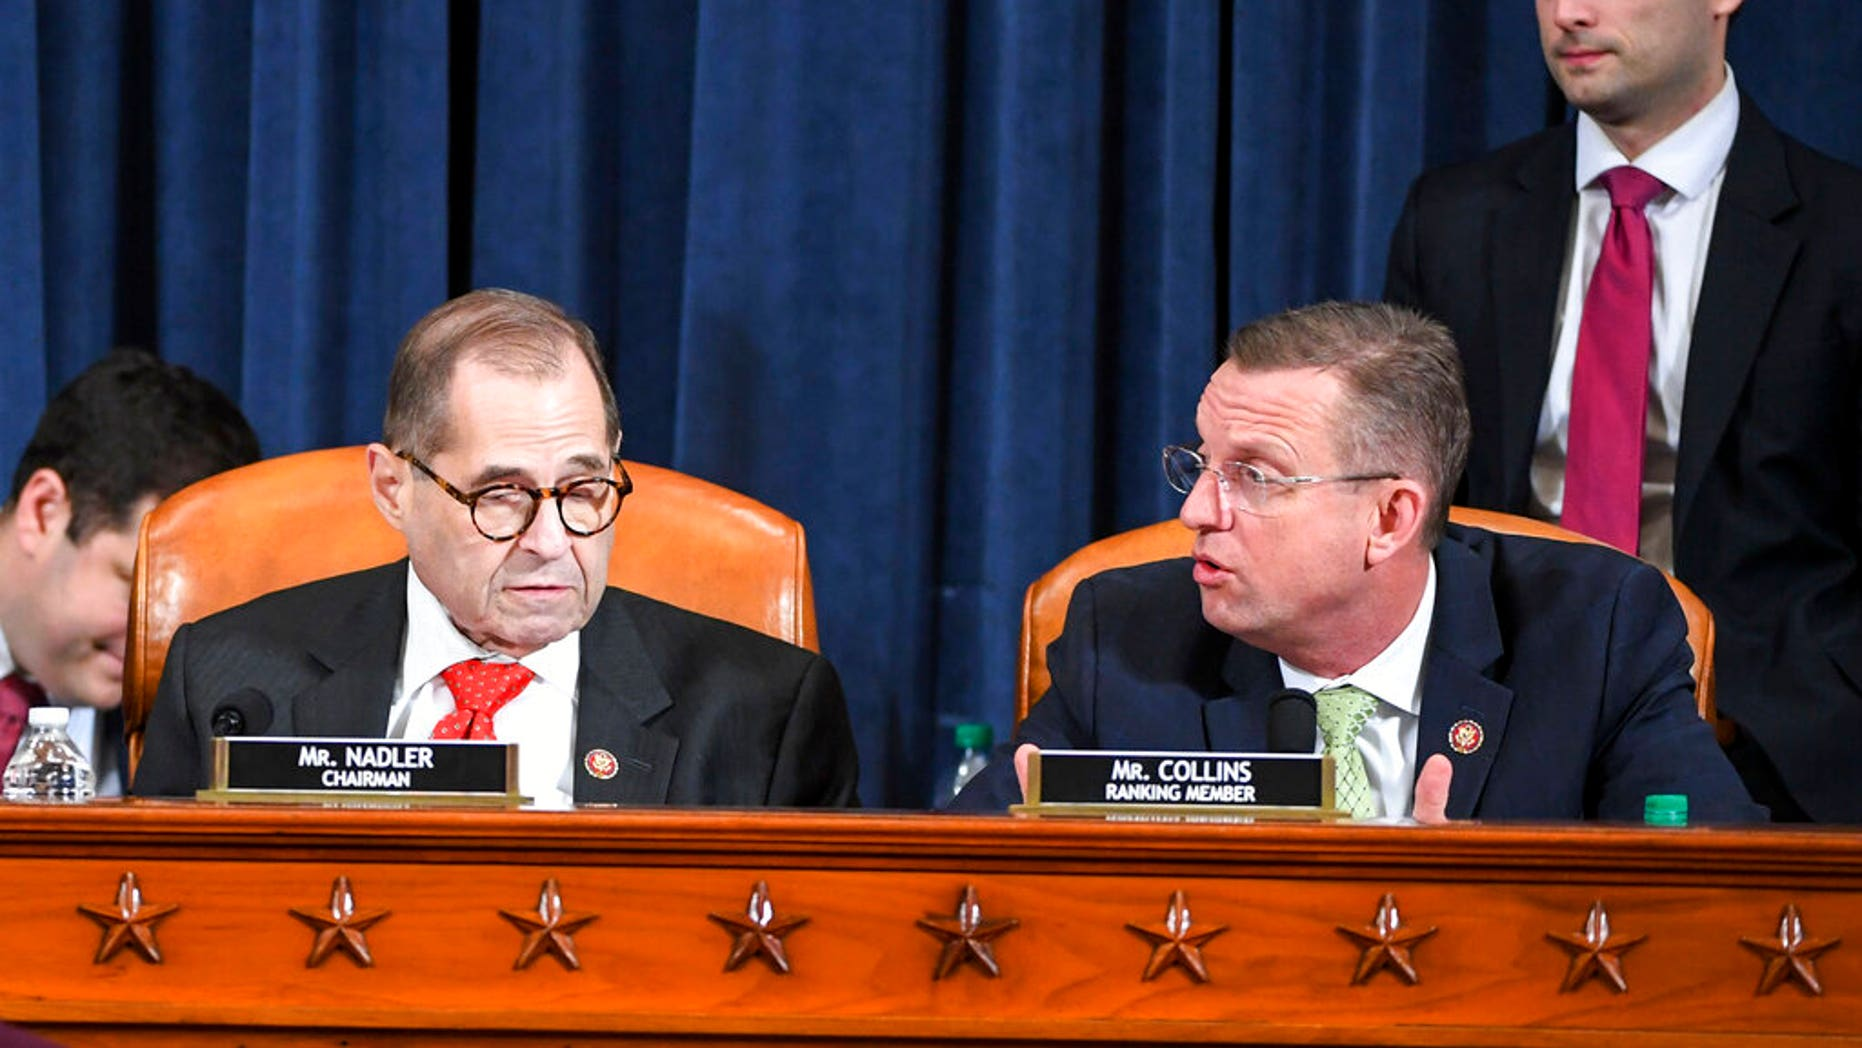 House Judiciary Committee ranking member Rep. Doug Collins, R-Ga., right, voices his displeasure after House Judiciary Committee Chairman Rep. Jerrold Nadler, D-N.Y., announced a recess at a House Judiciary Committee markup of the articles of impeachment against President Trump. (Jonathan Newton/The Washington Post via AP, Pool)